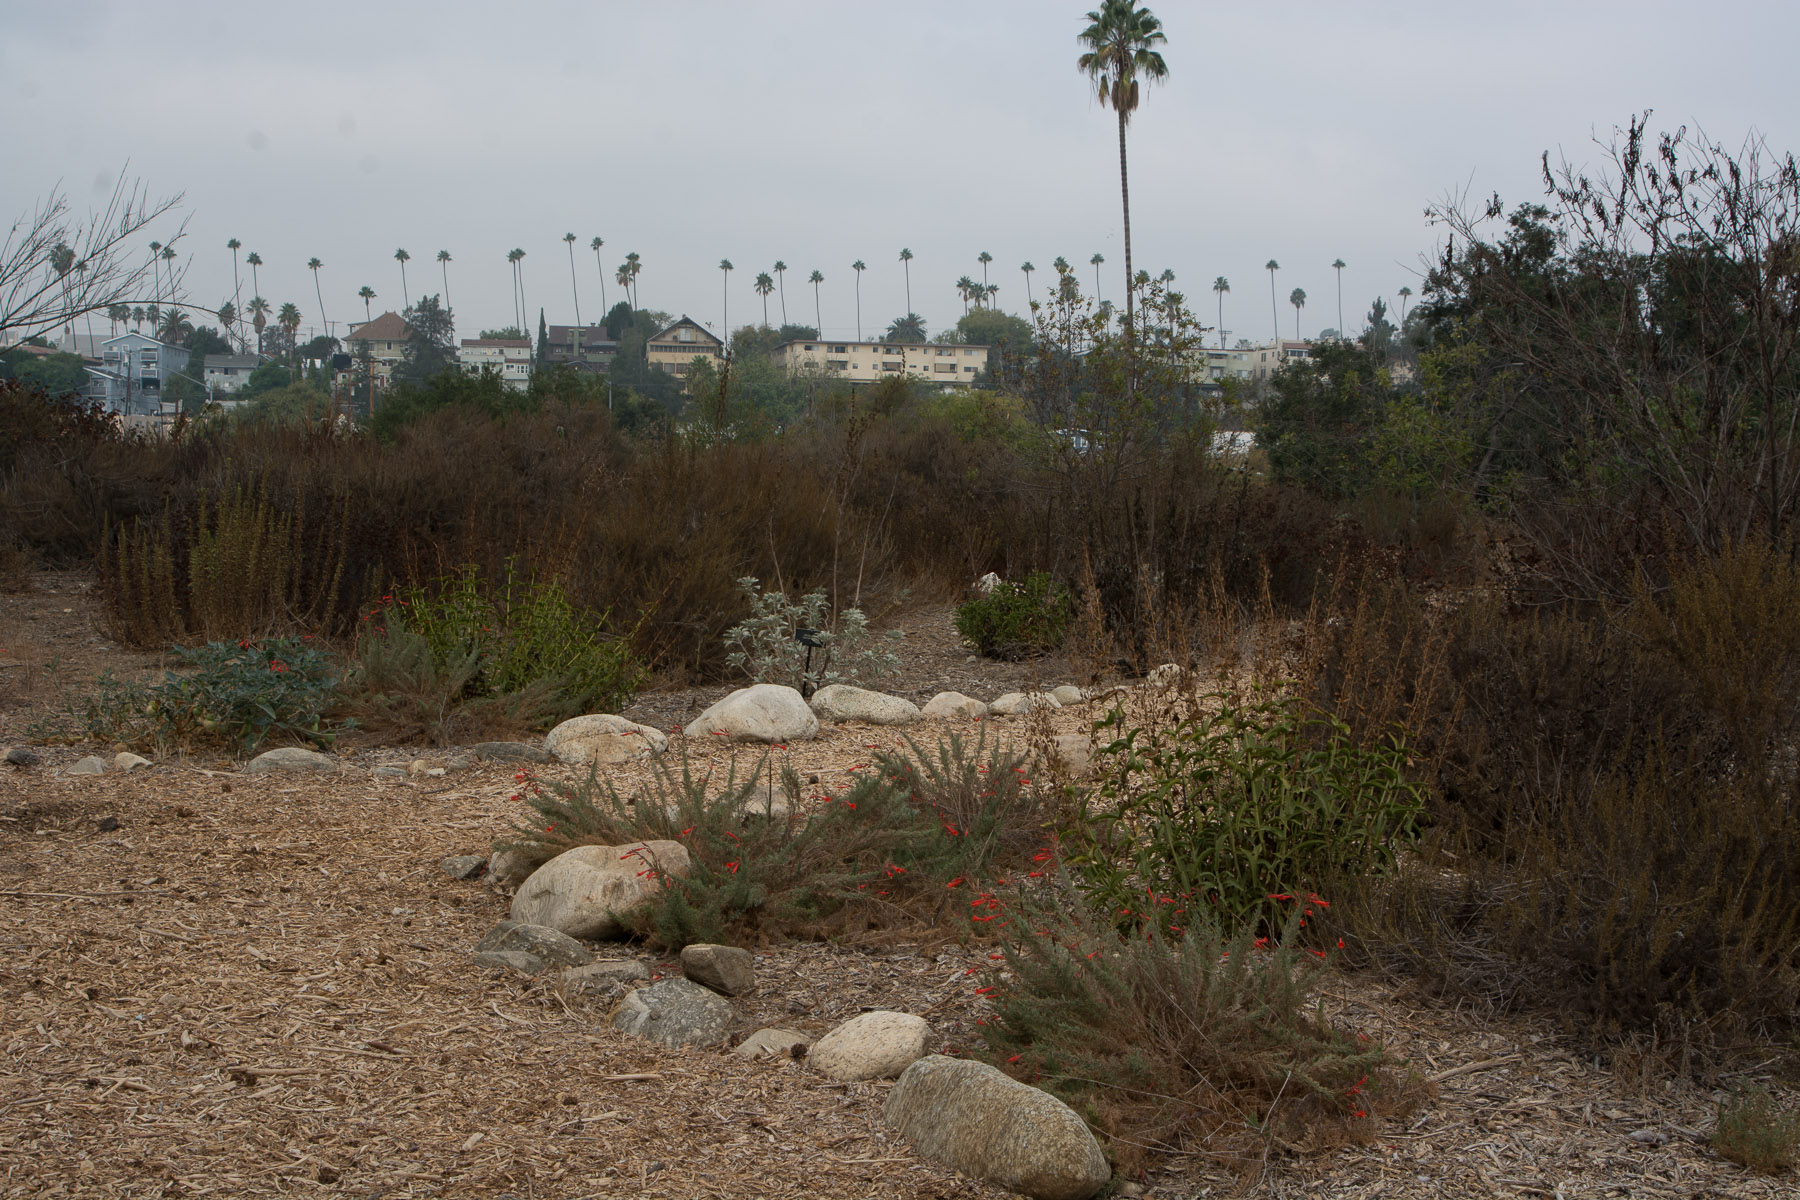 South Pasadena nature park